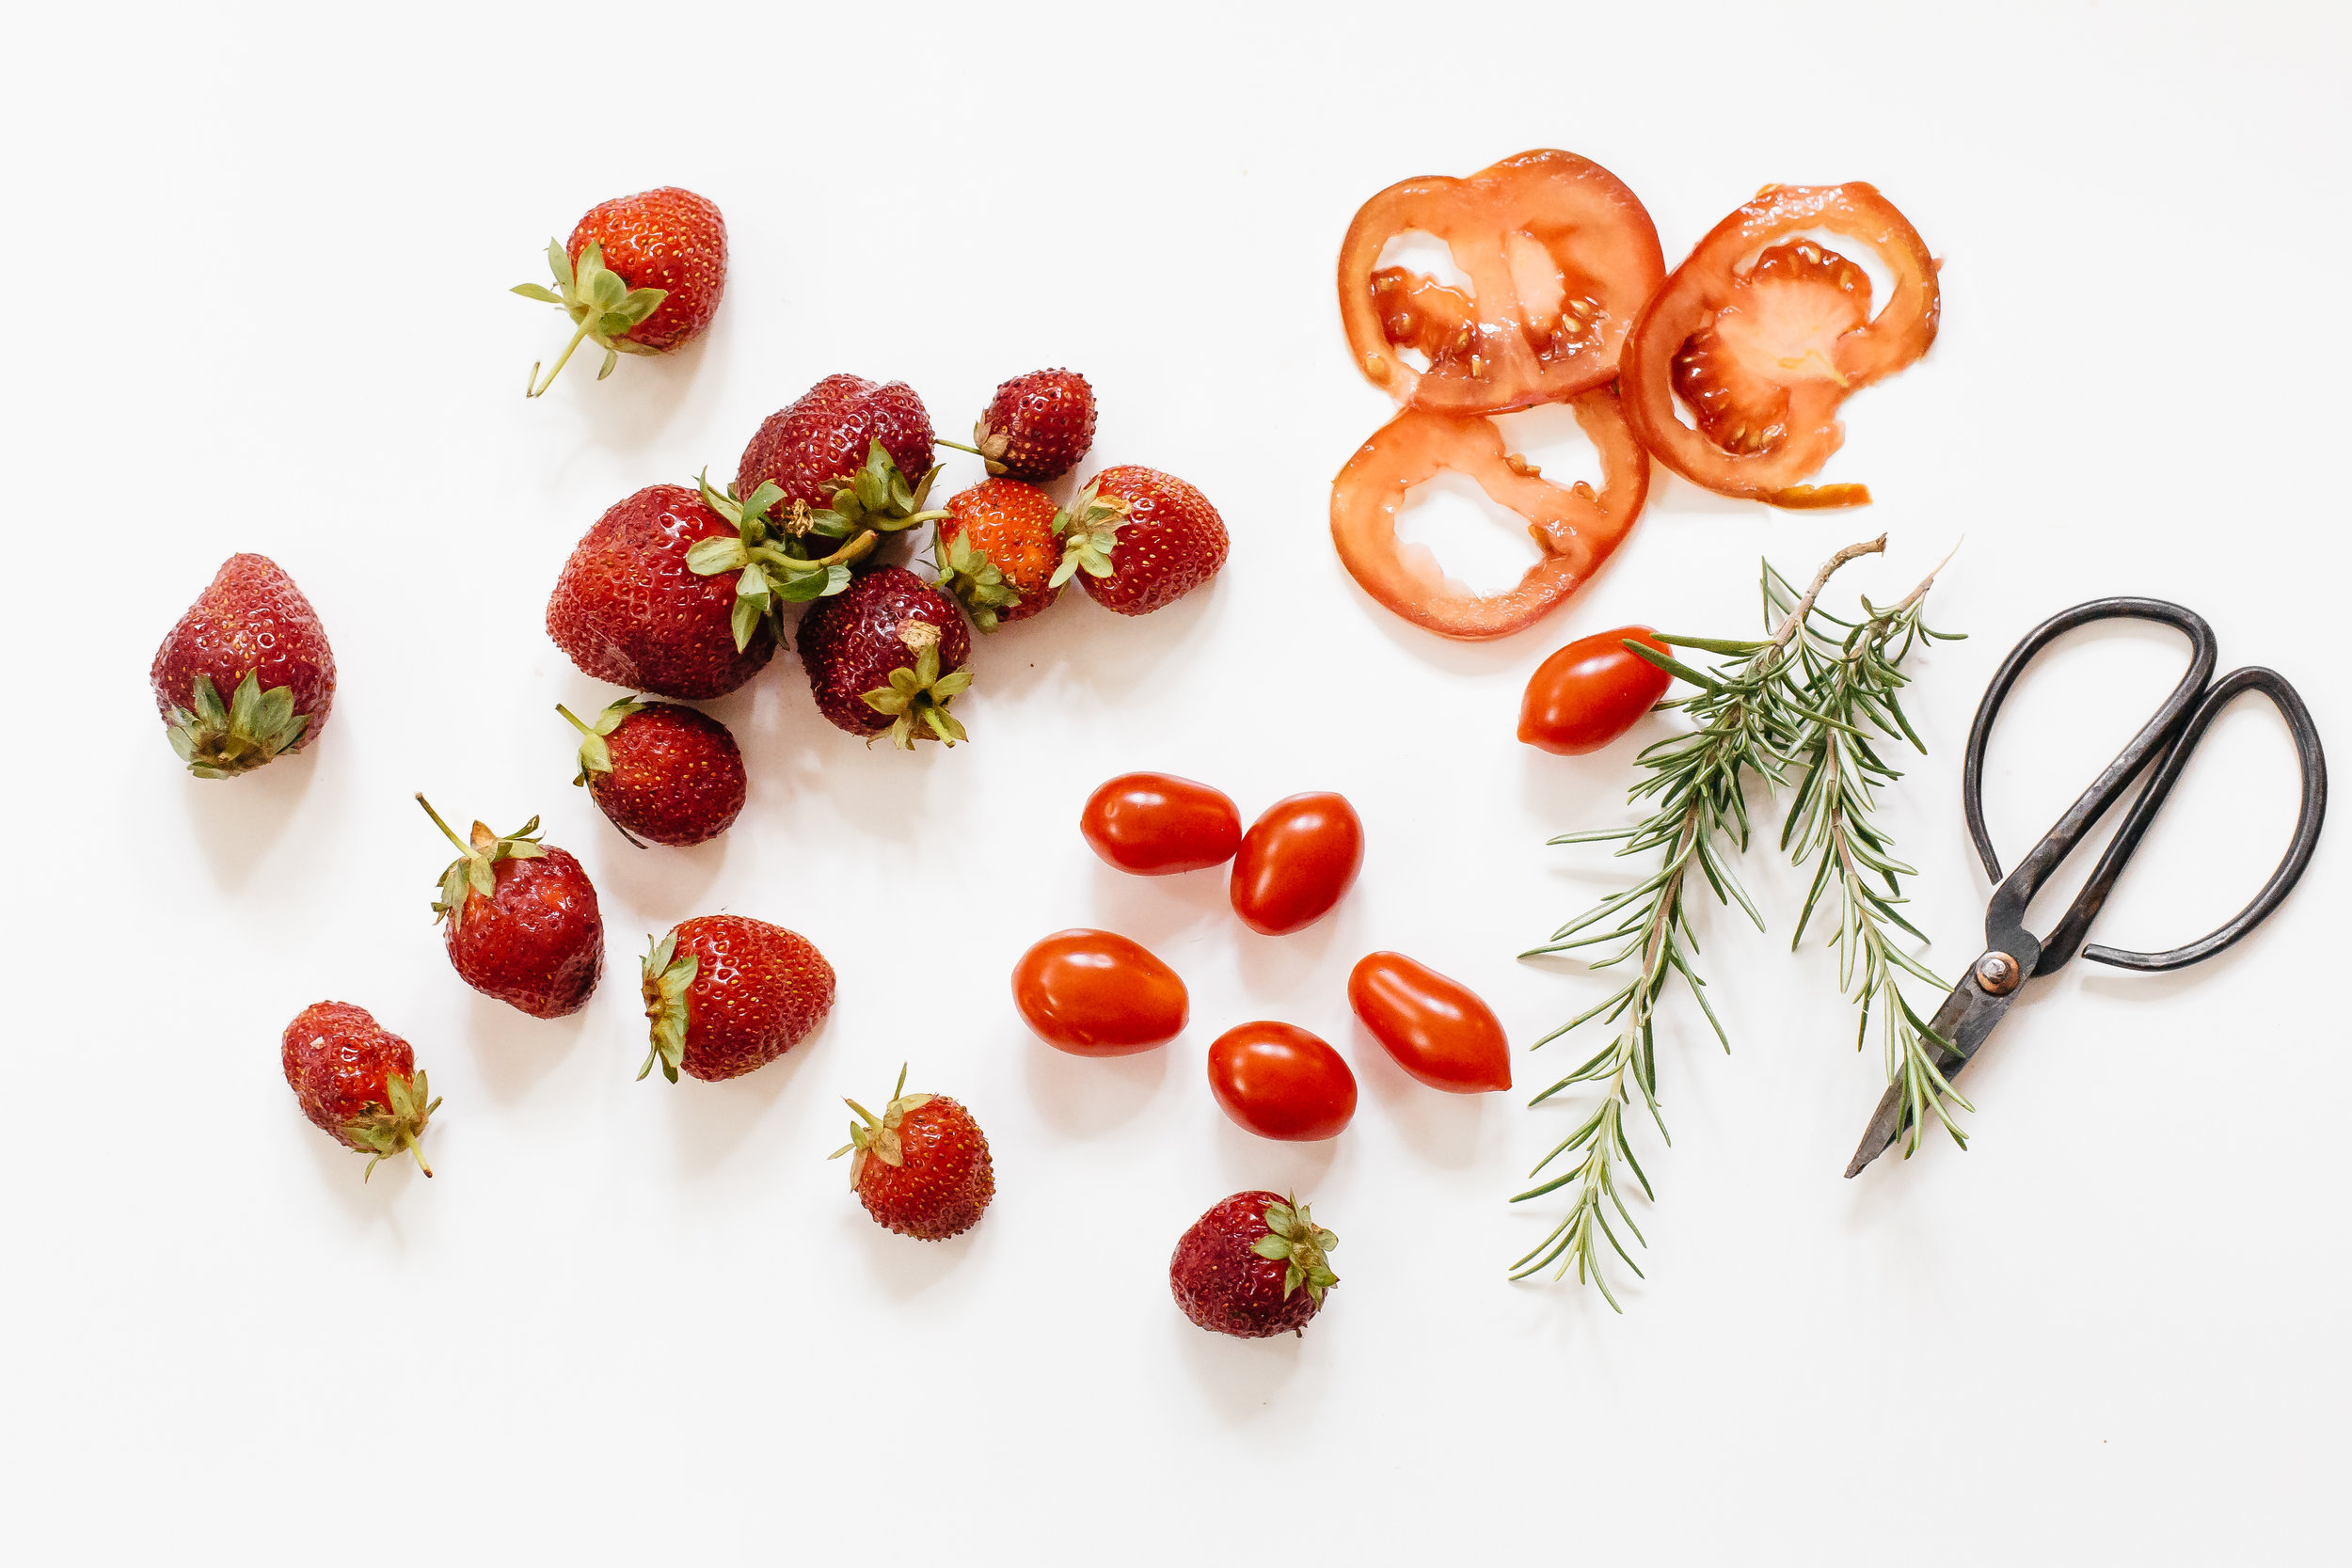 tomatos, strawberrys, thyme, and scissors.jpg